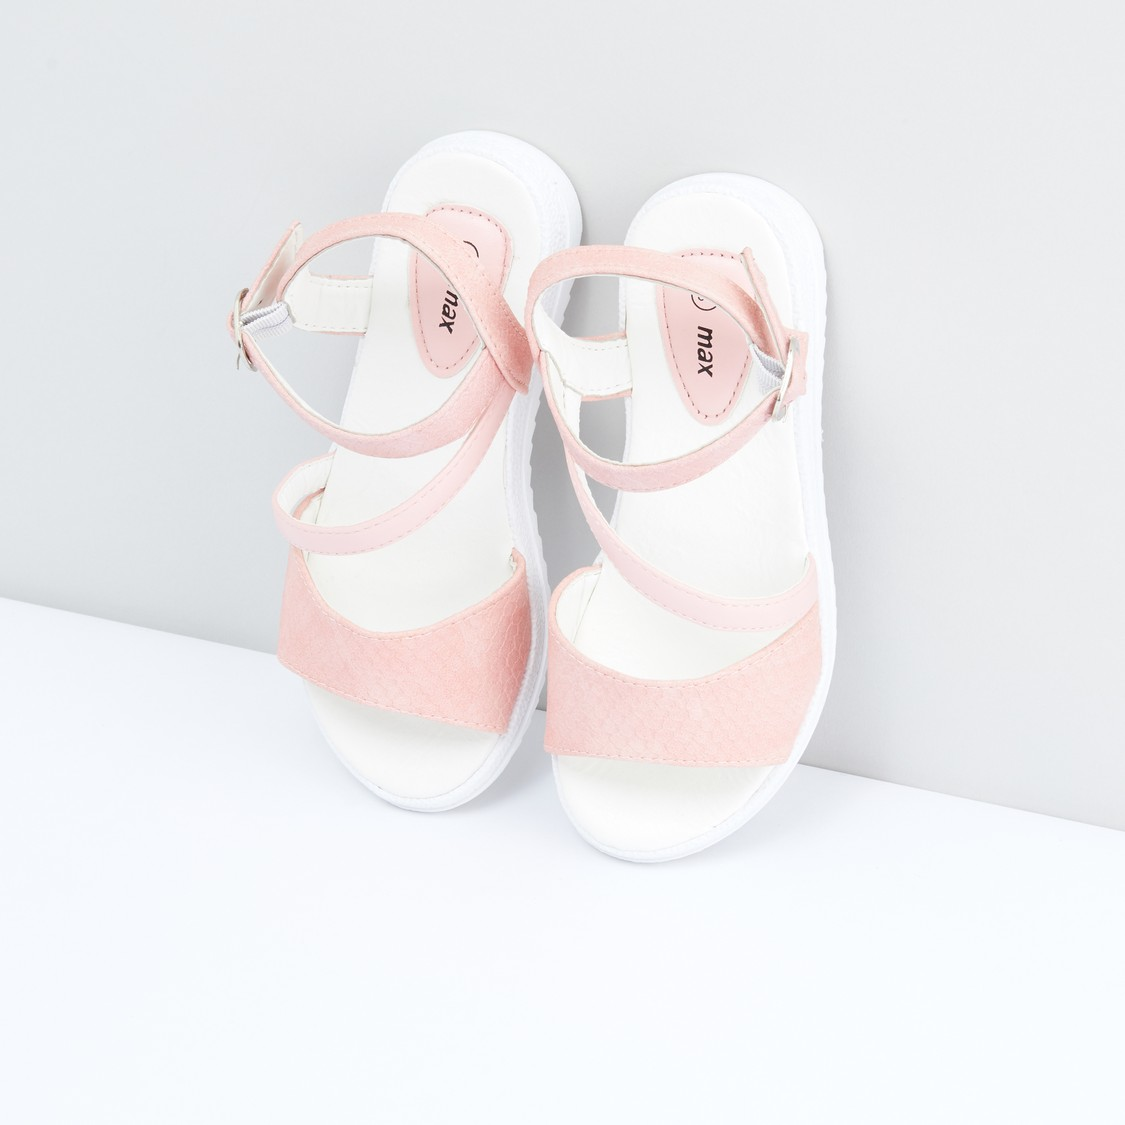 Textured Sandals with Ankle Strap and Buckle Closure